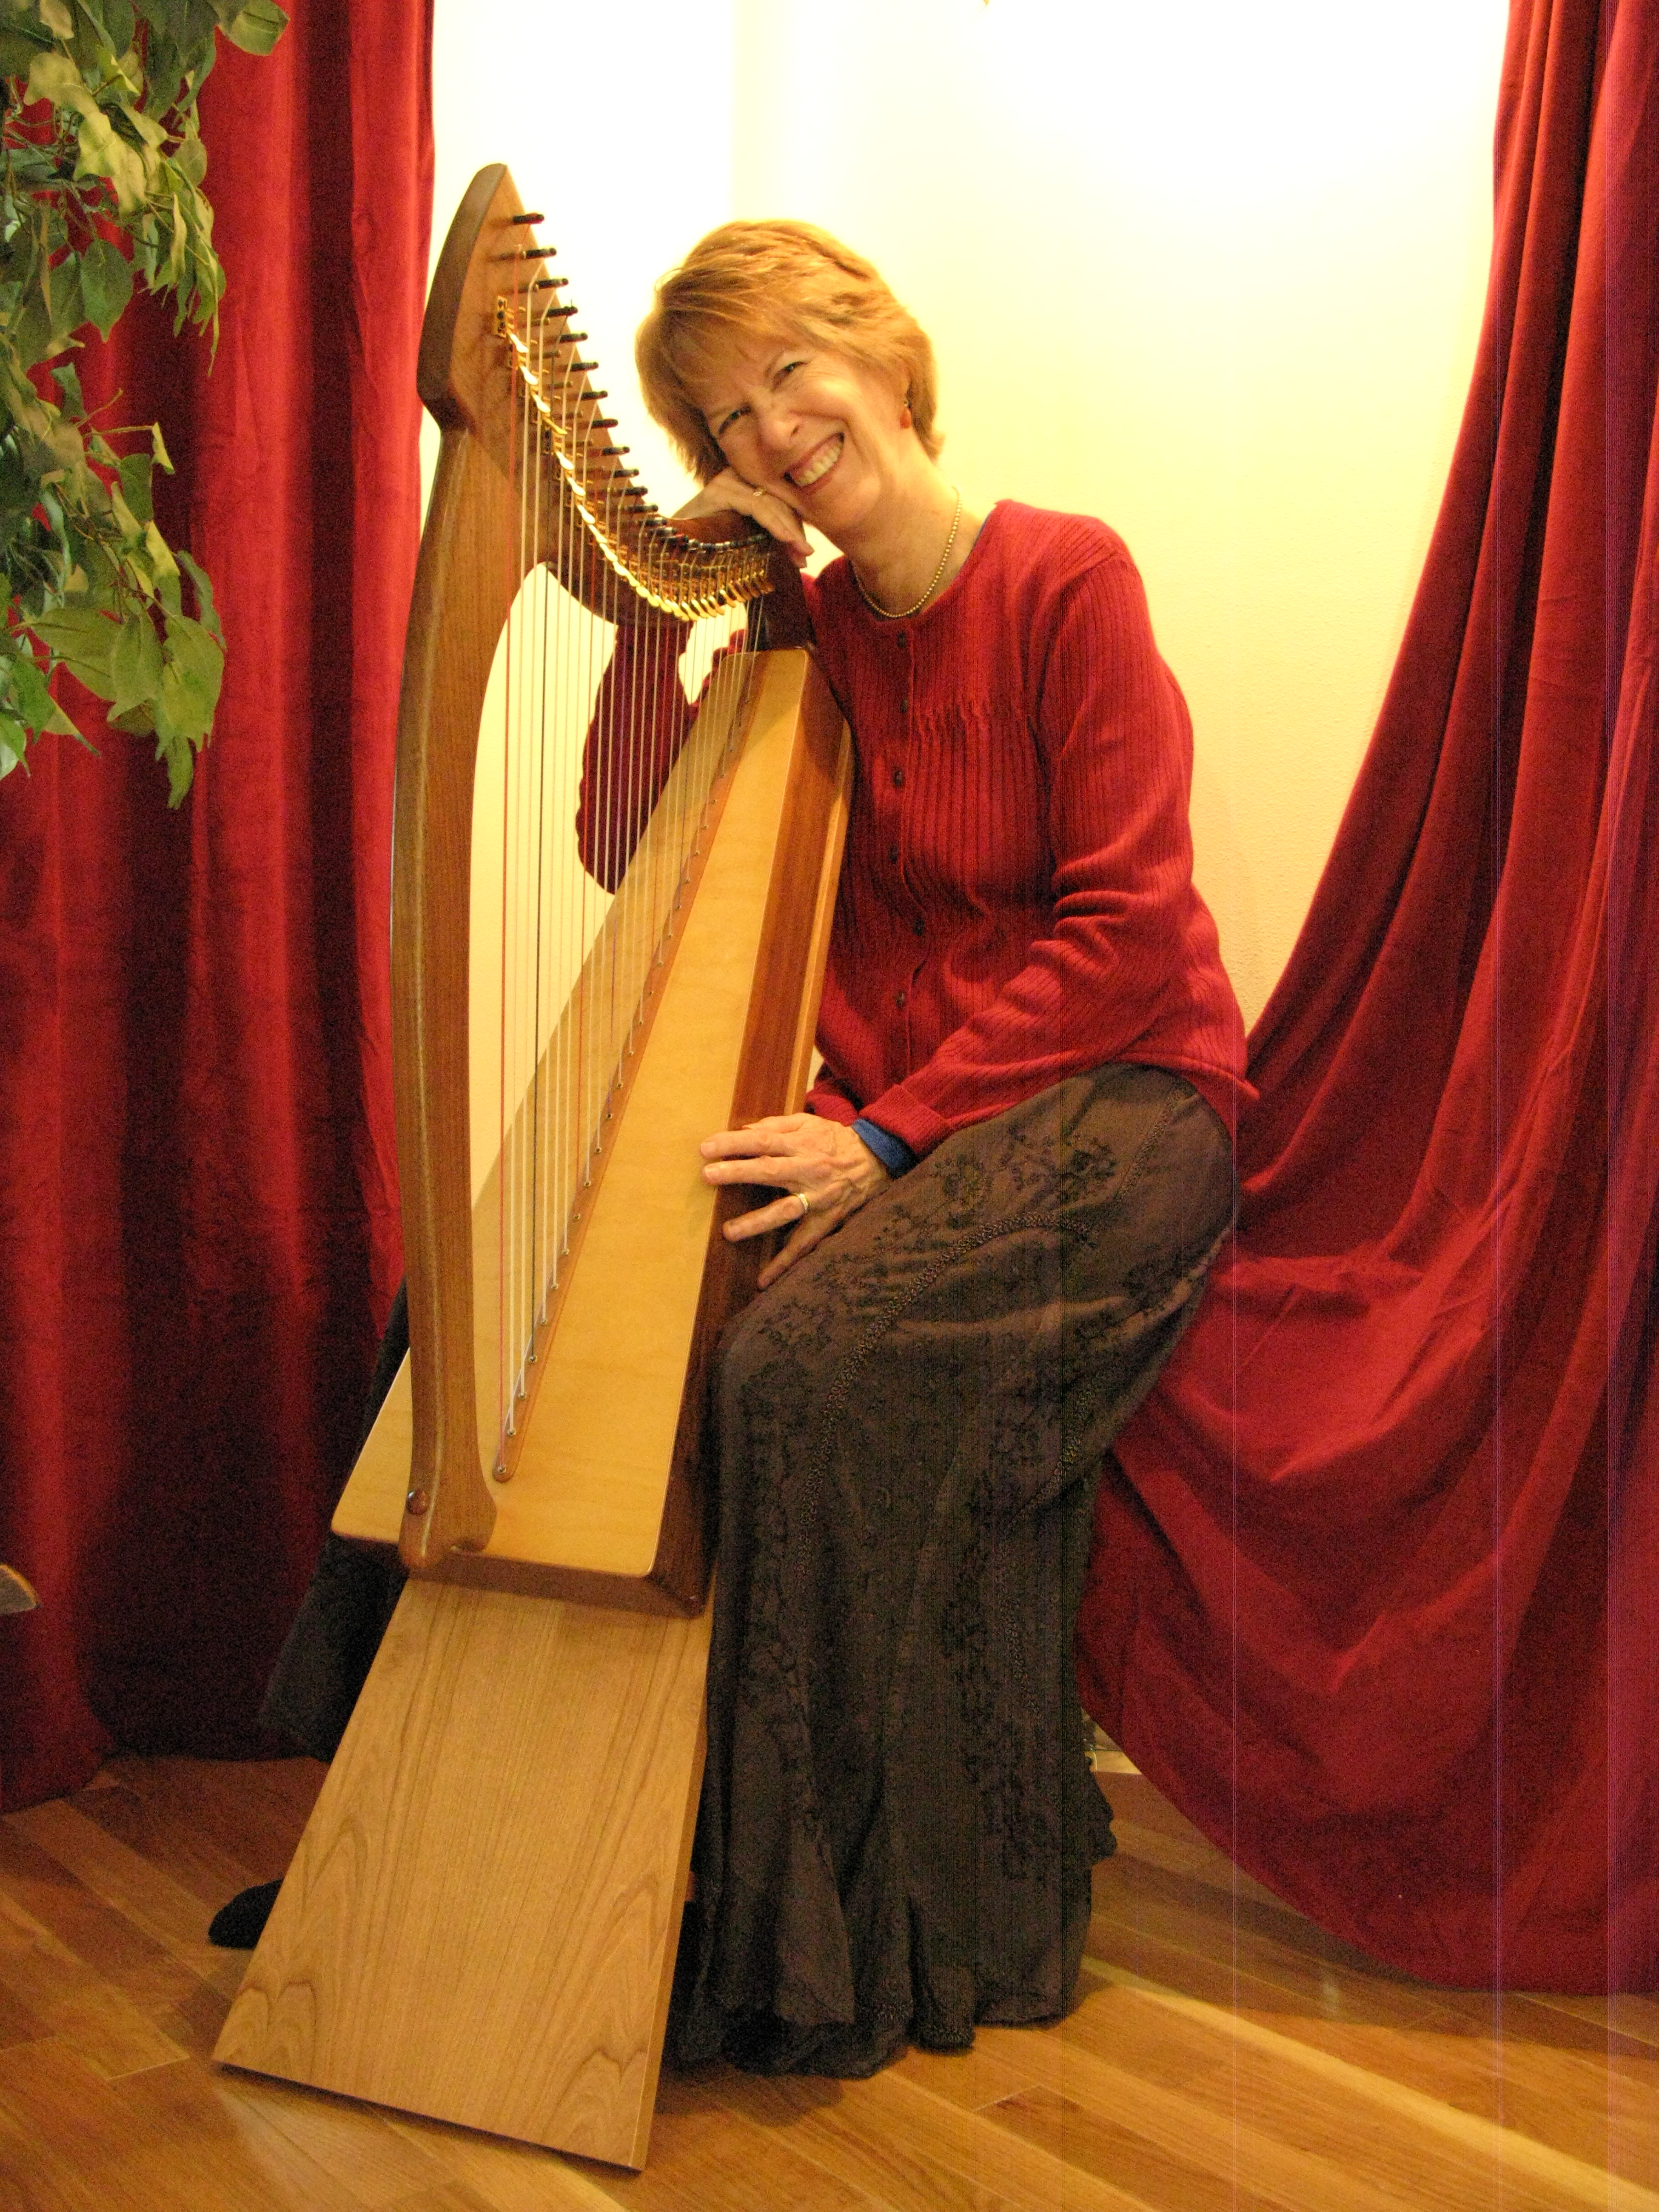 picture regarding Free Printable Lap Harp Music Cards identify Easiest Taking part in STAND FOR Minimal HARPS! Laurie Riley New music